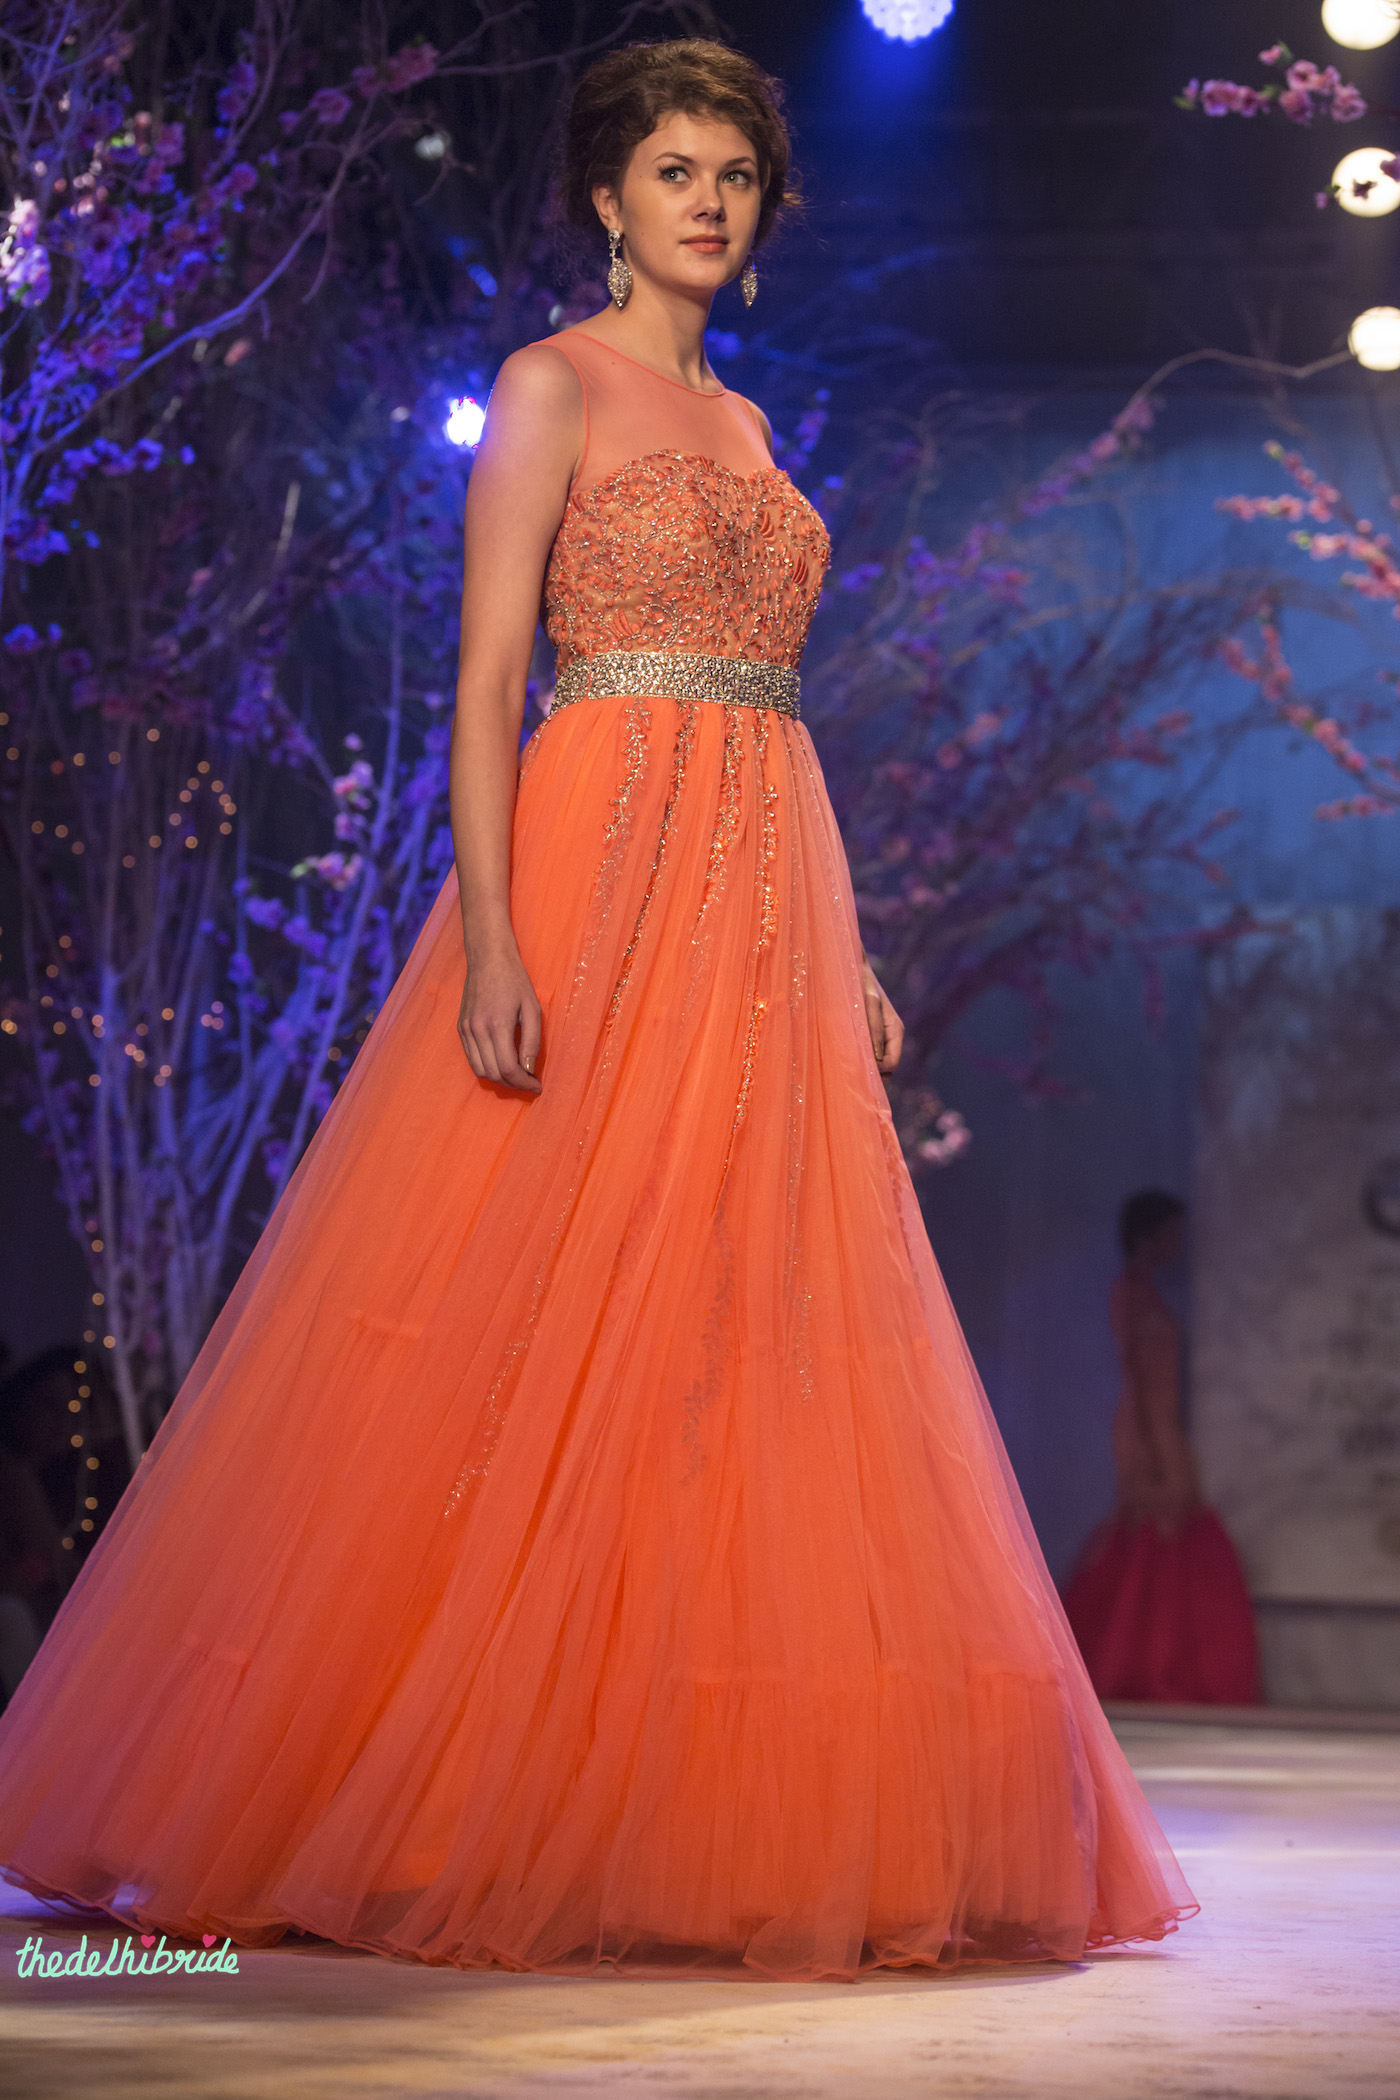 Jyotsna tiwari at india bridal fashion week 2014 an for Wedding dresses online in india